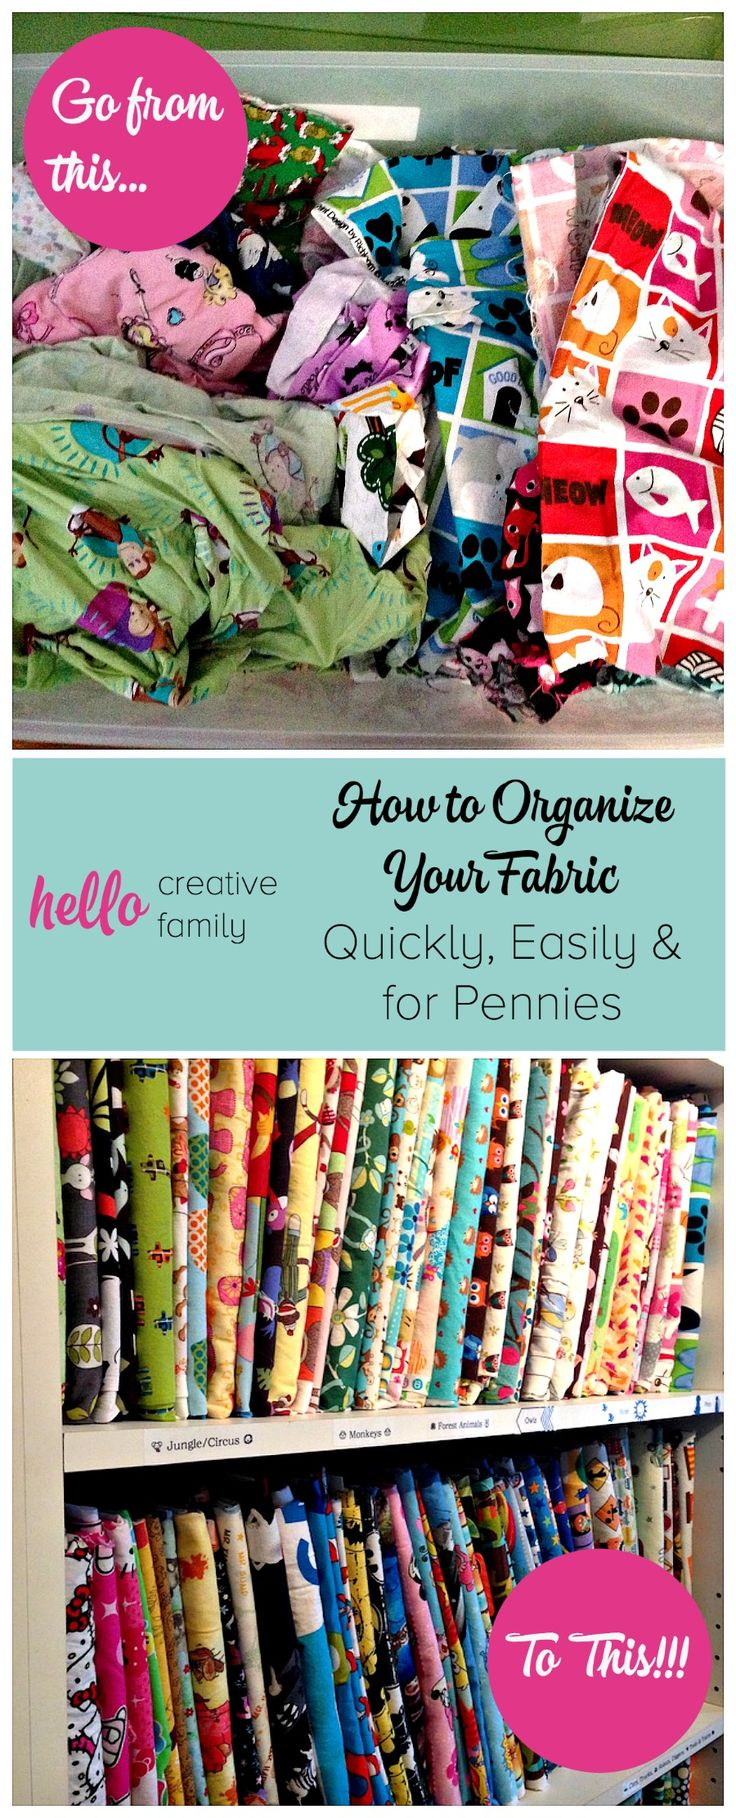 Hello Creative Family Shares With You How to Organize Your Fabric Quickly, Easily and for Pennies Using Comic Book Backing Boards and a Brother Label Maker!